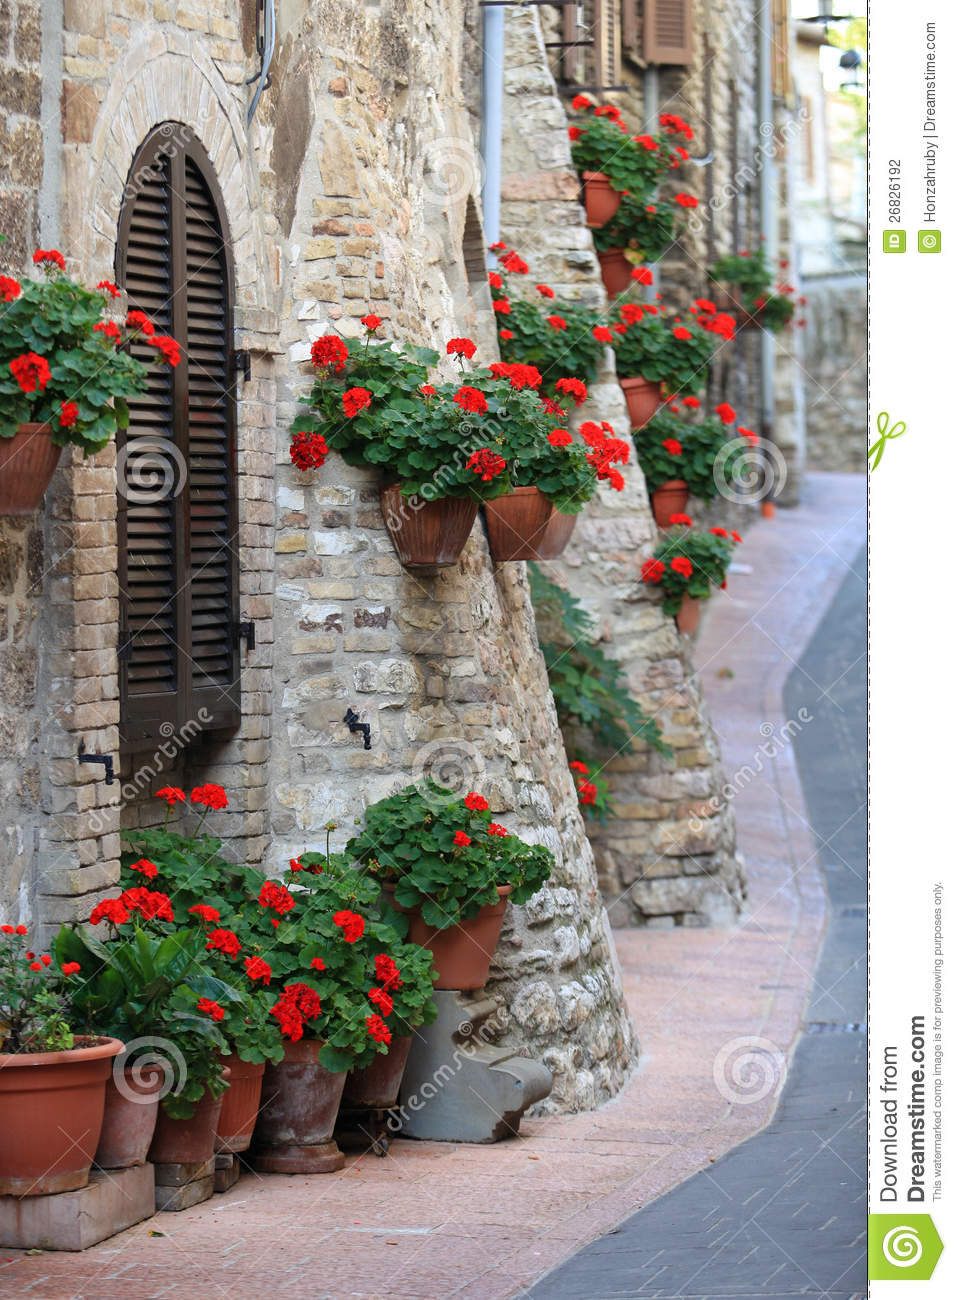 Geranium flowers in streets of Assisi, Umbria